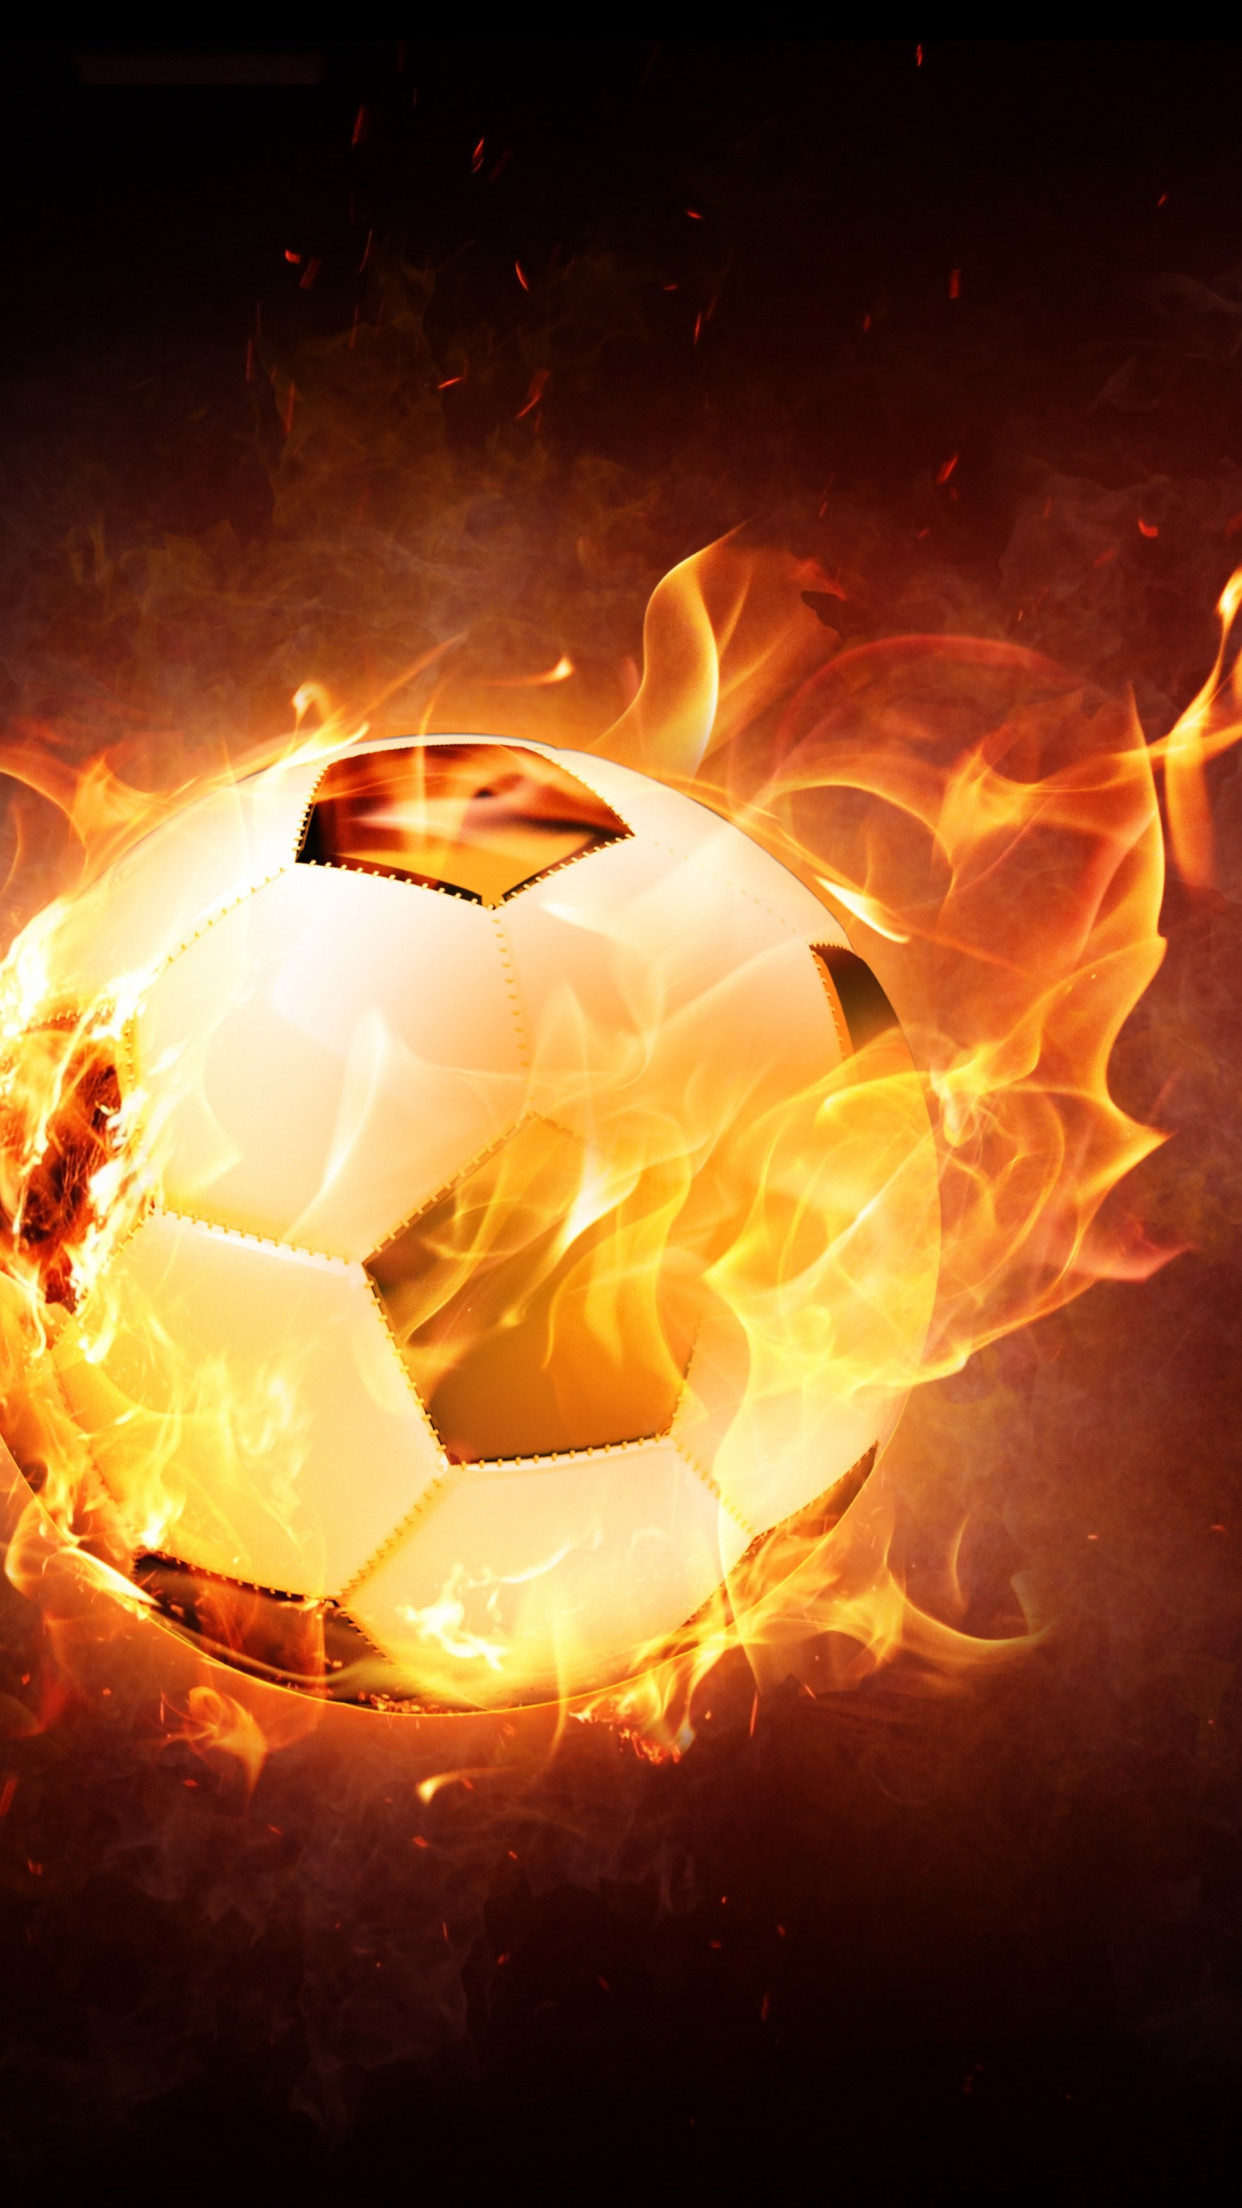 The football ball is on fire wallpaper 1242x2208